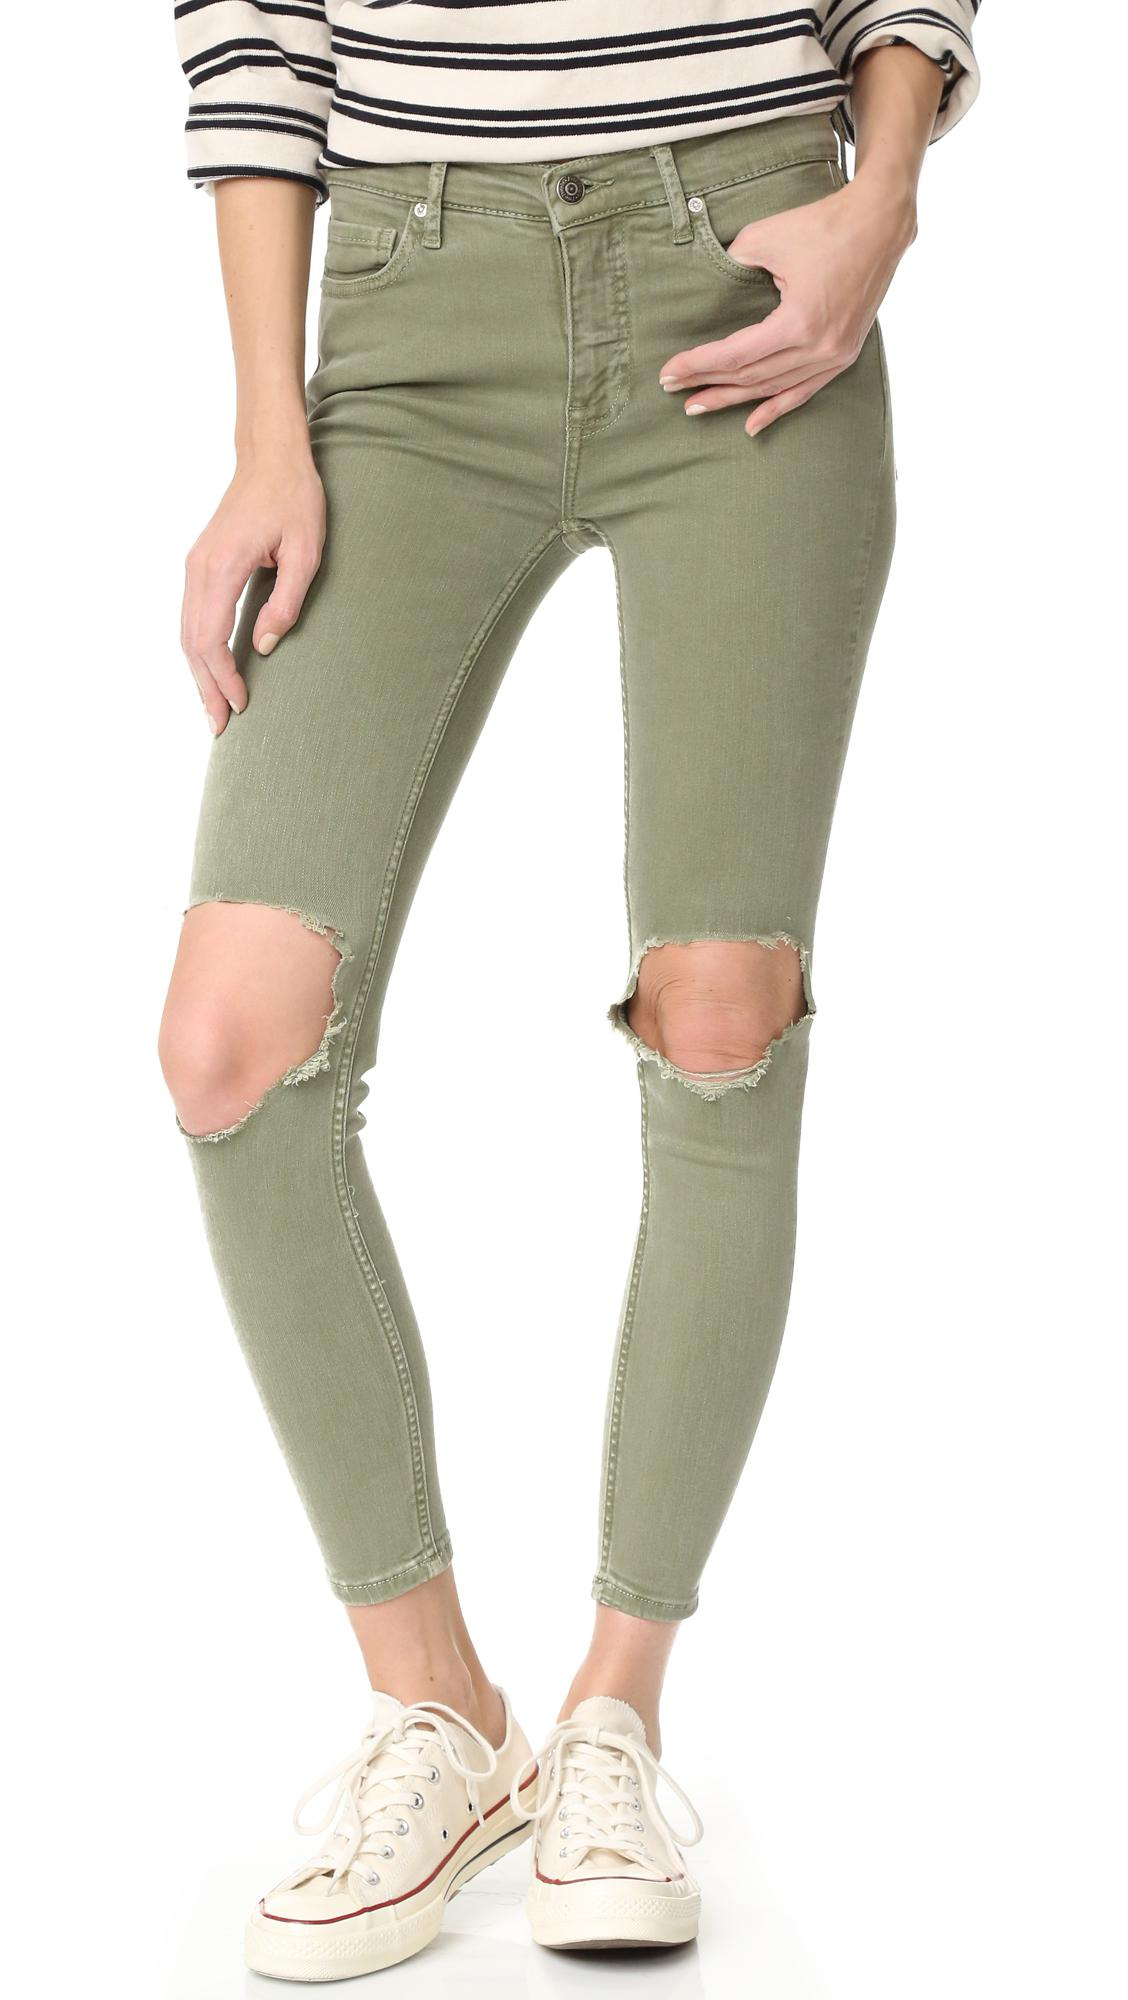 9c2dd874c Free People High Rise Busted Skinny Jeans in Green - Lyst